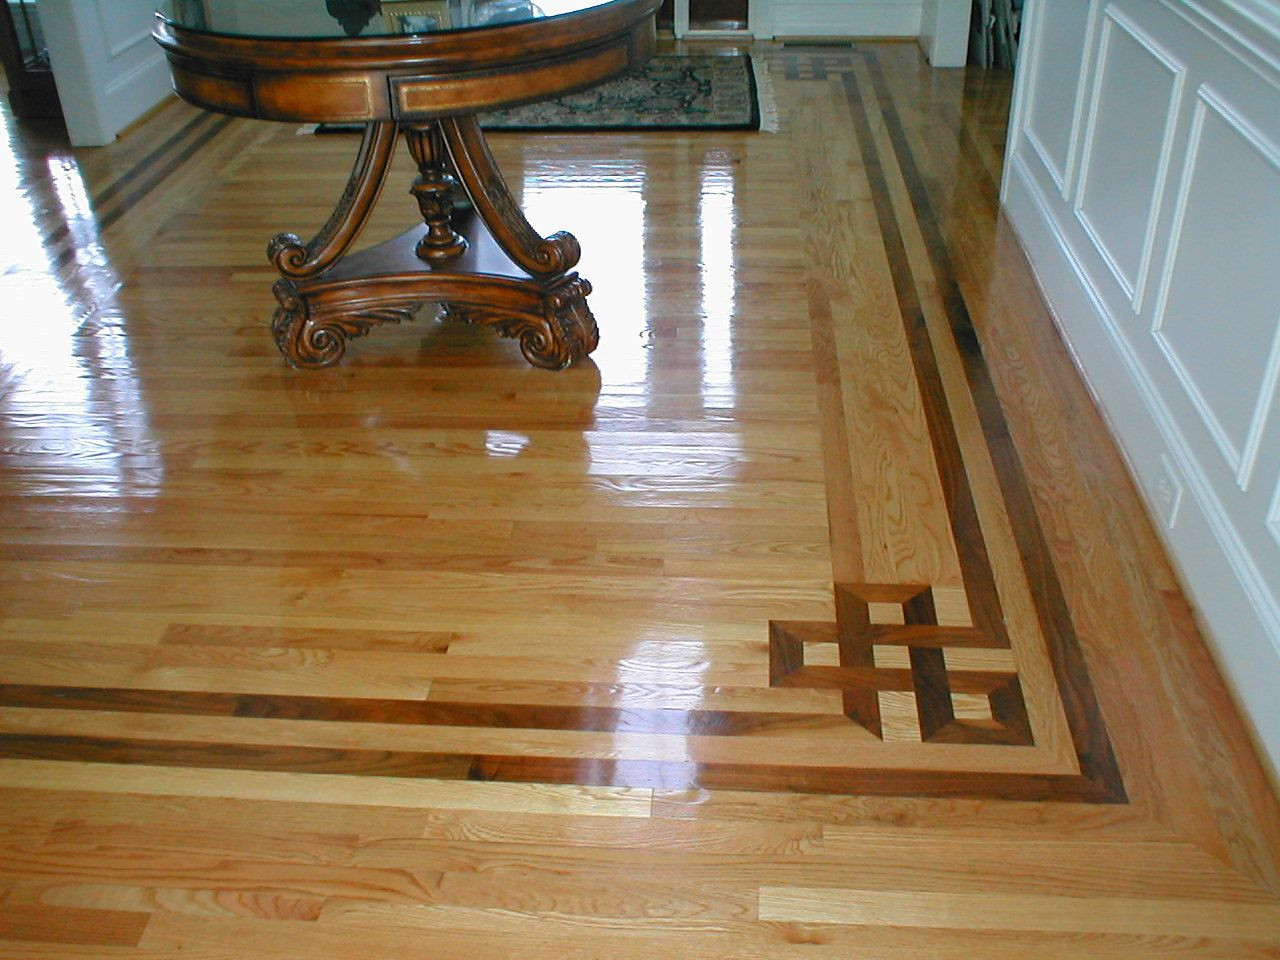 hardwood flooring installation portland oregon of i love the illusion of depth created by this border you can tell throughout you can tell the installers took care to contrast shades of the border material to keep it from all running together